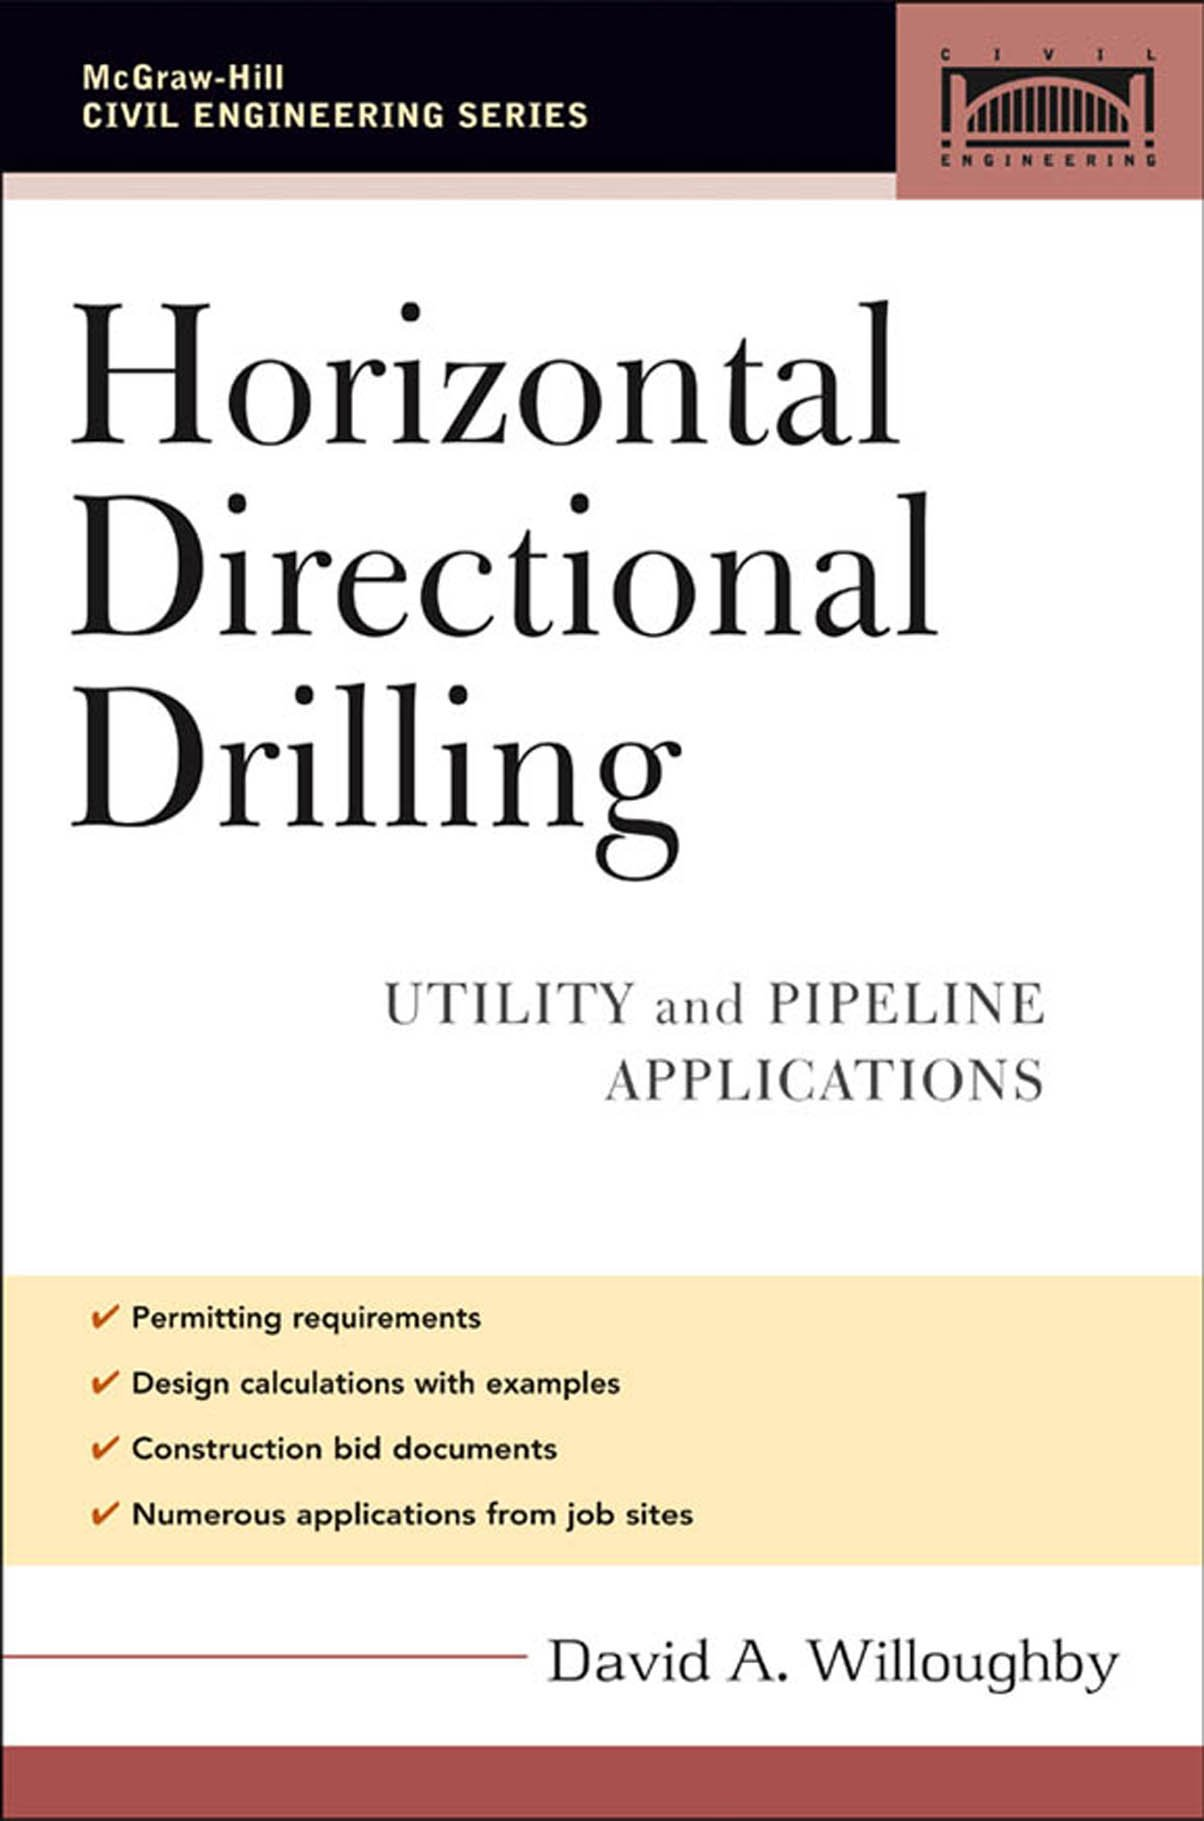 Horizontal Directional Drilling Hdd Utility And Pipeline Applications Civil Engineering Willoughby David Ebook Amazon Com